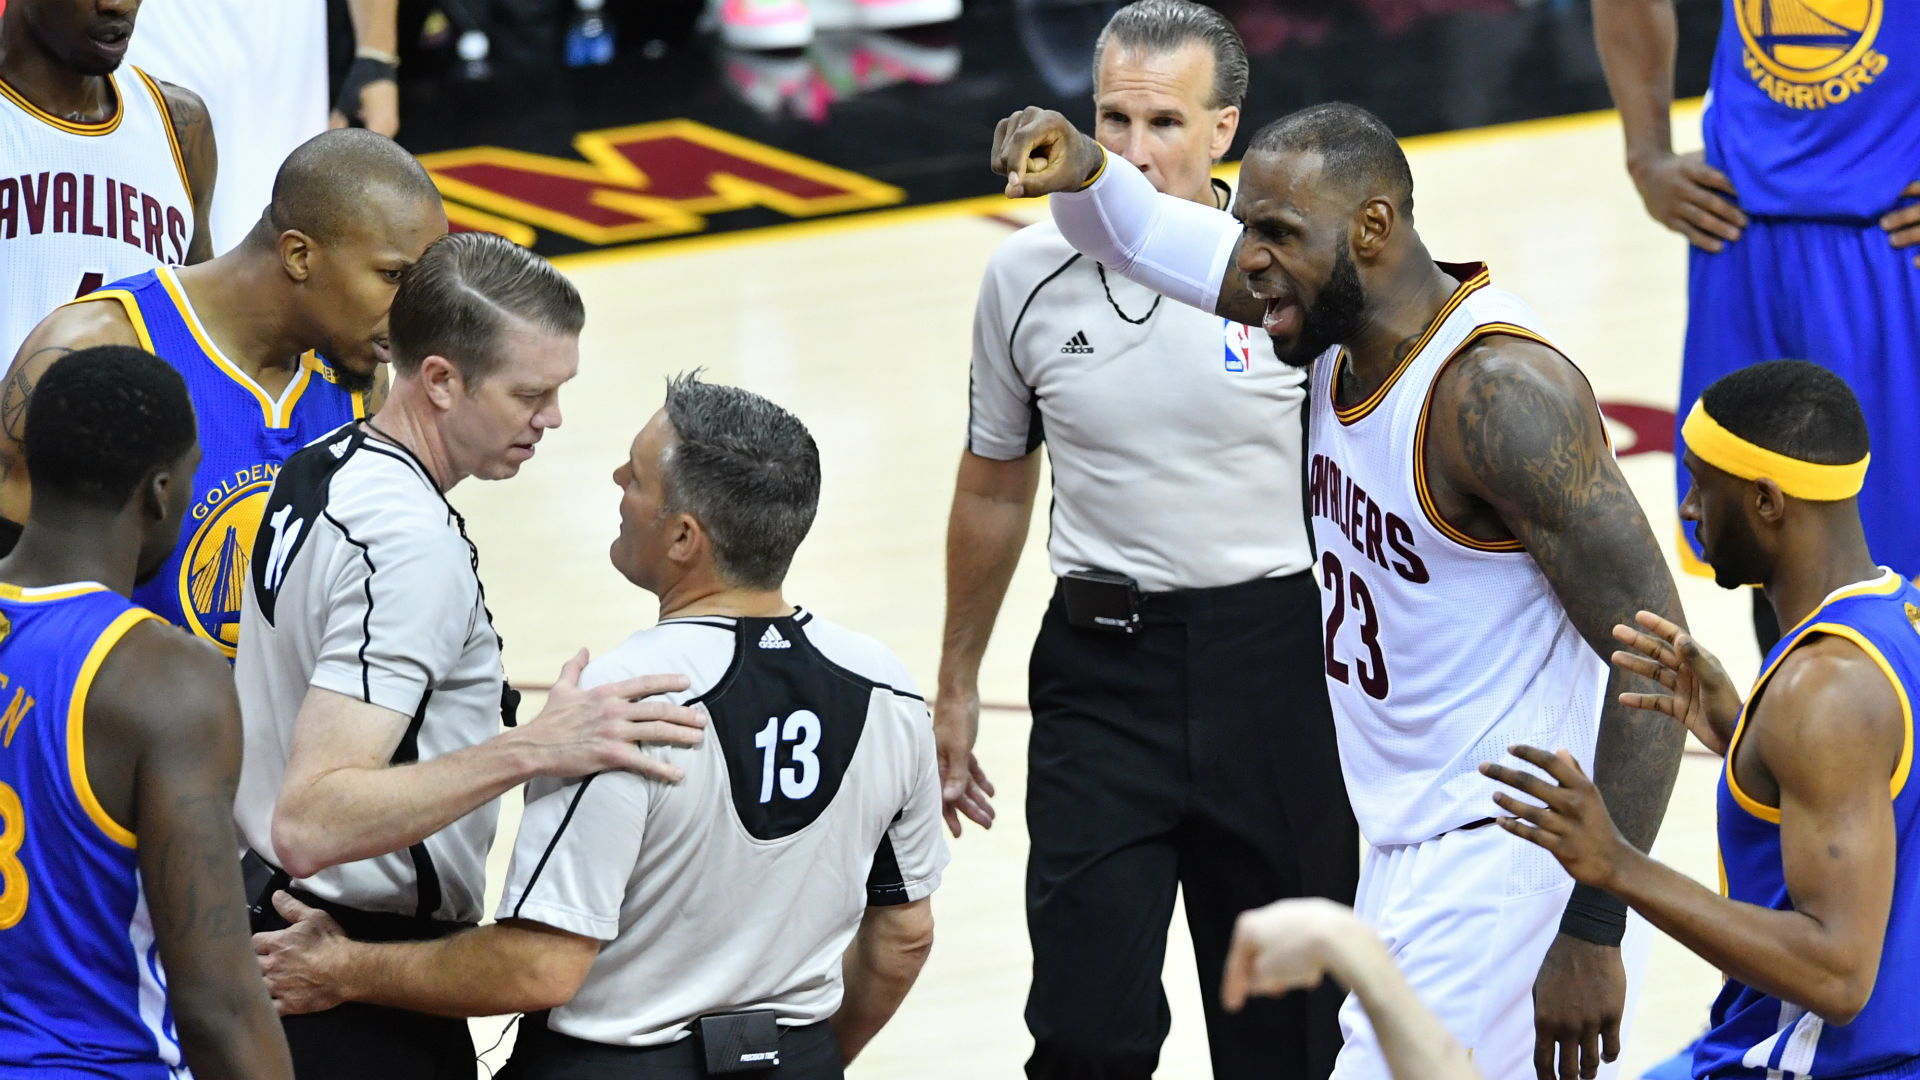 Cavs, Warriors will get physical as finals tension boils